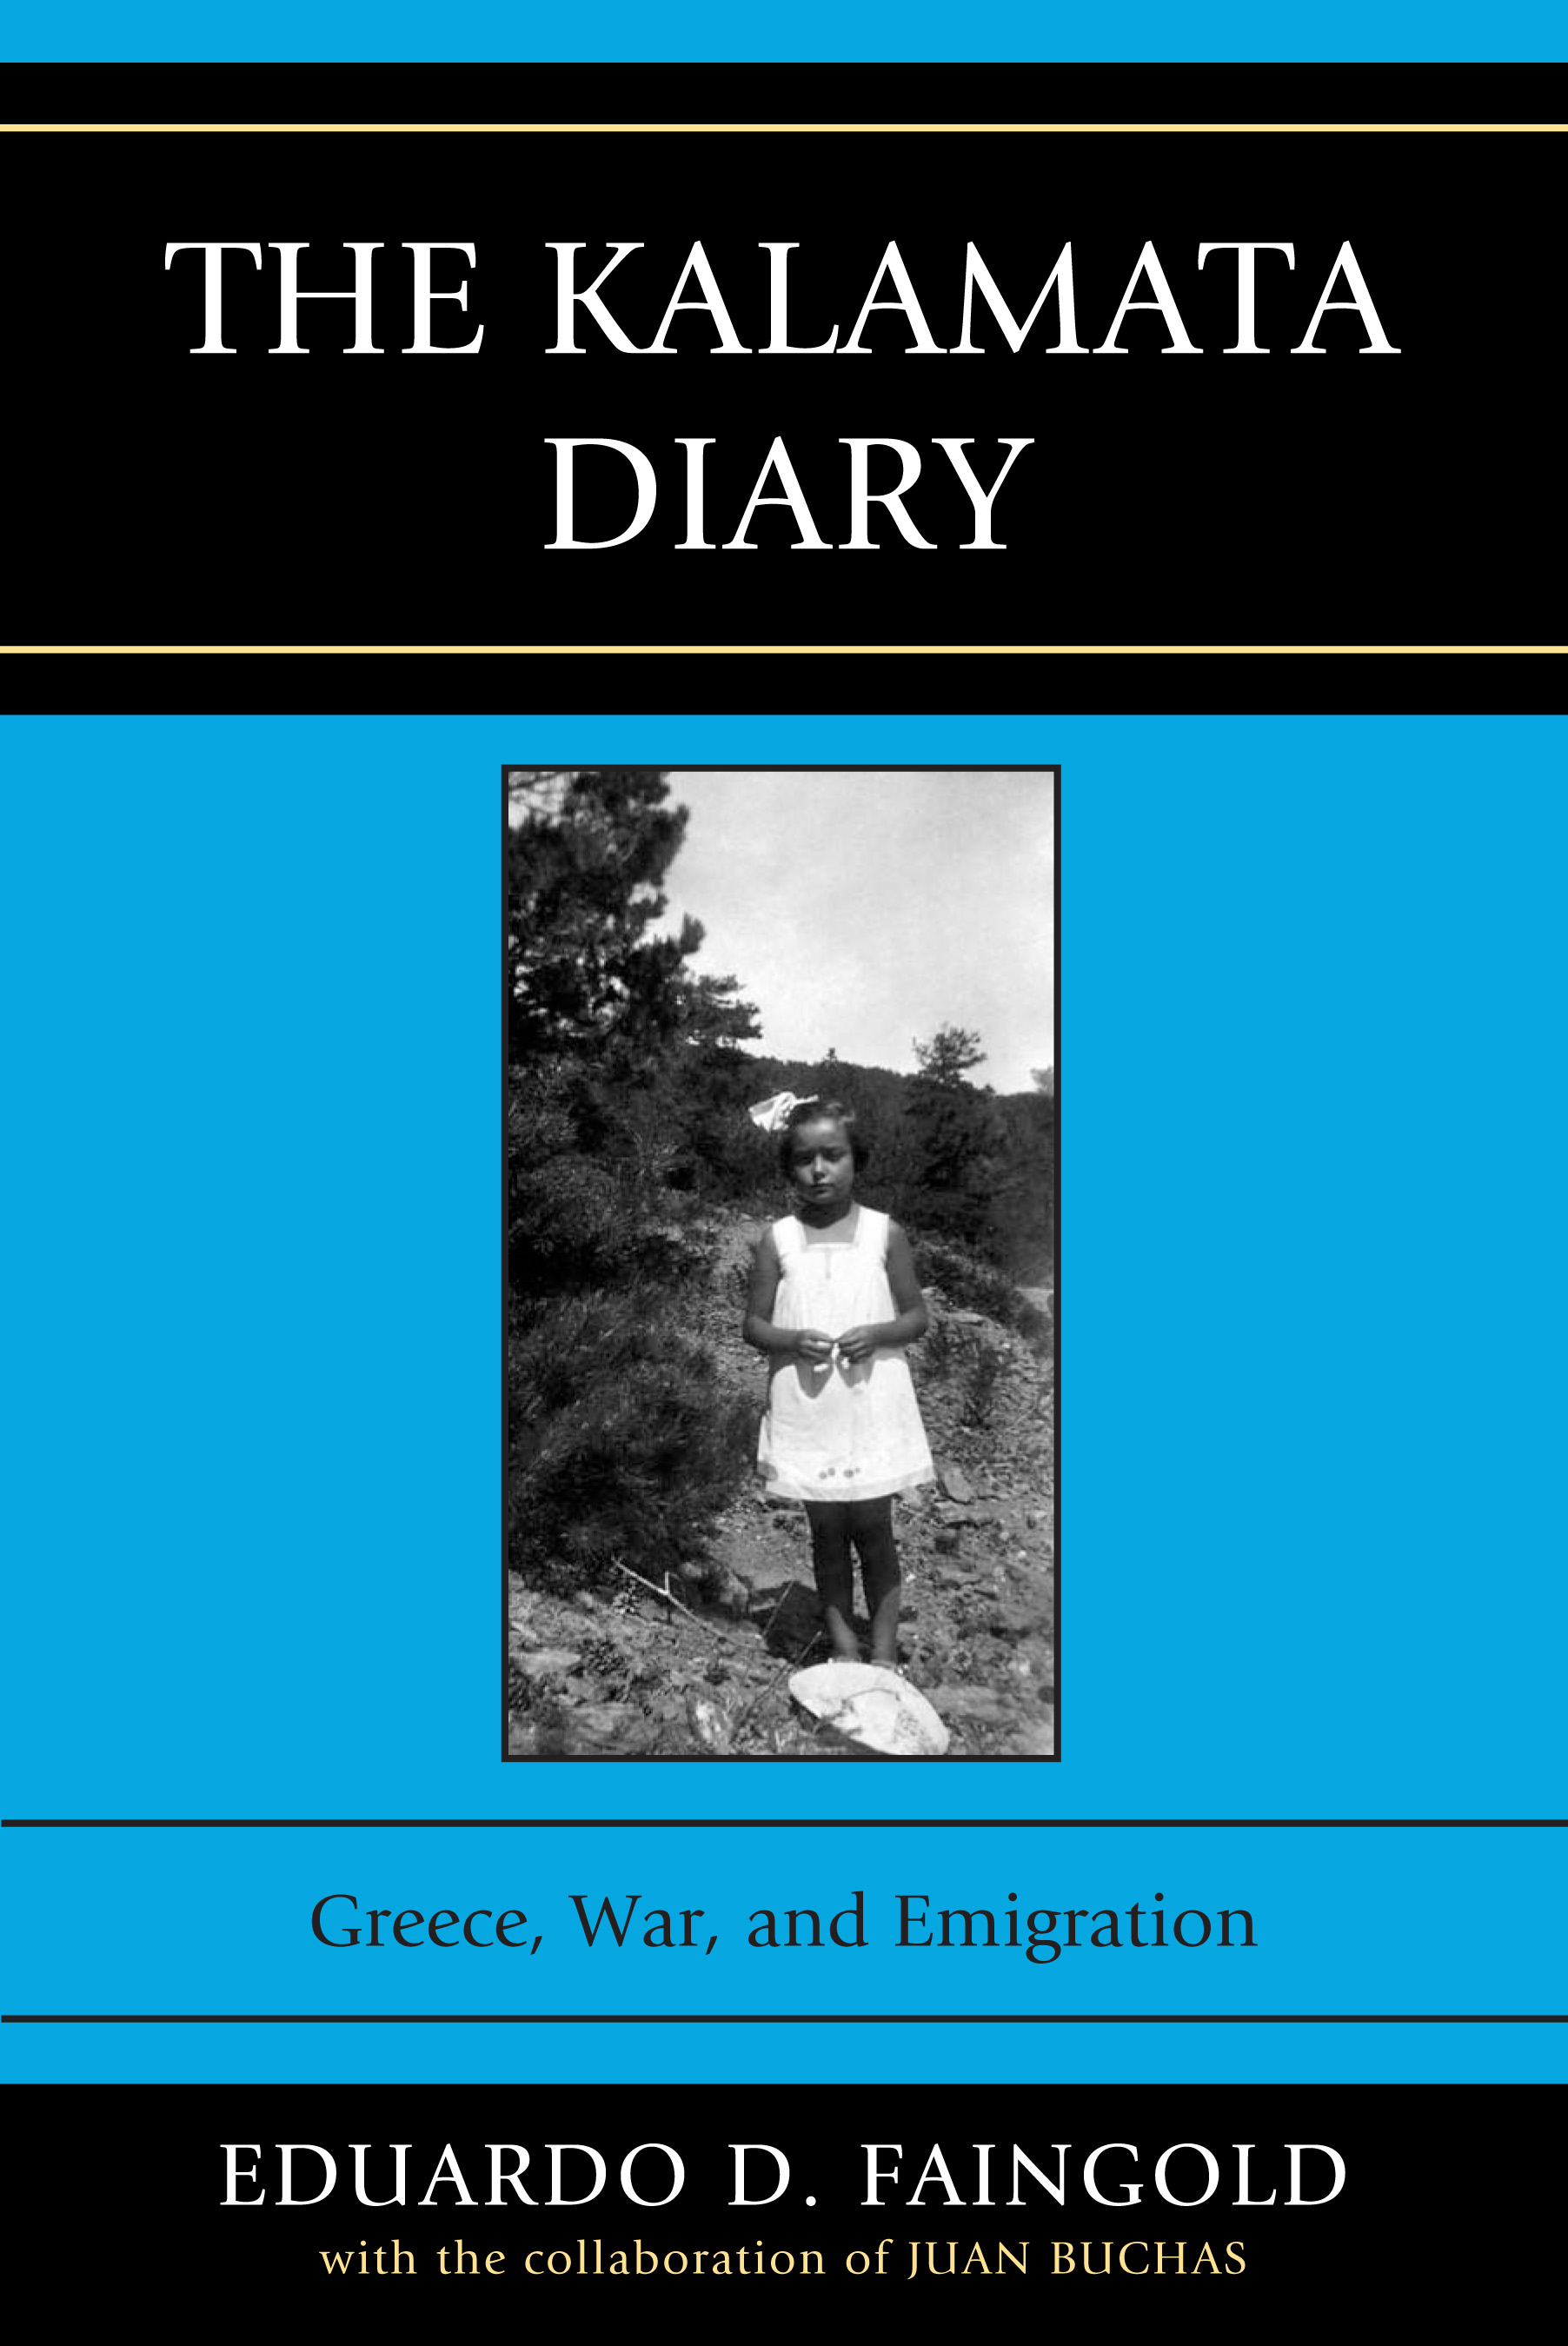 The Kalamata Diary